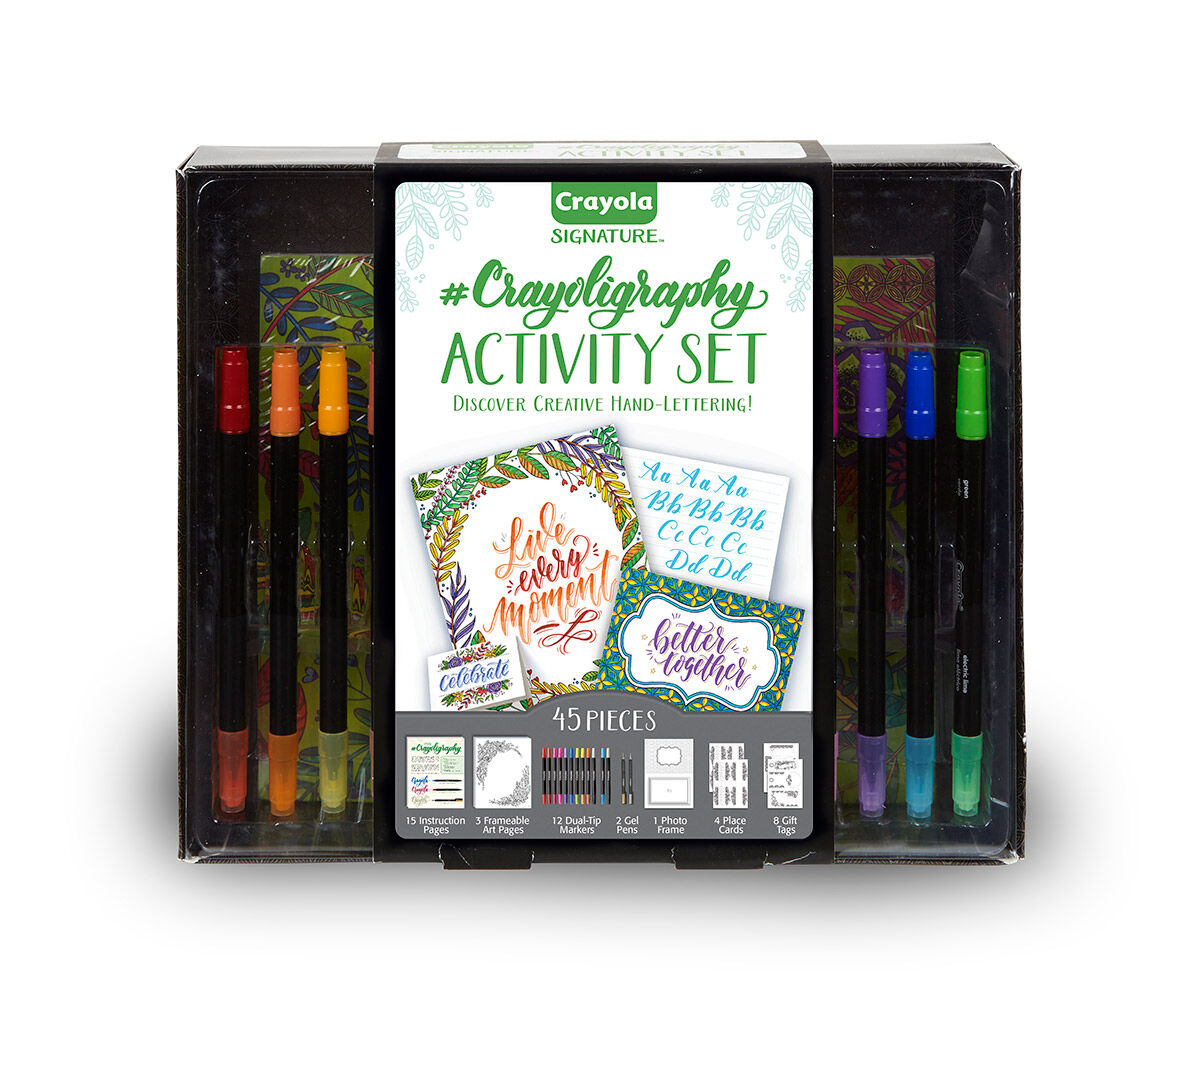 Signature Crayoligraphy Activity Set